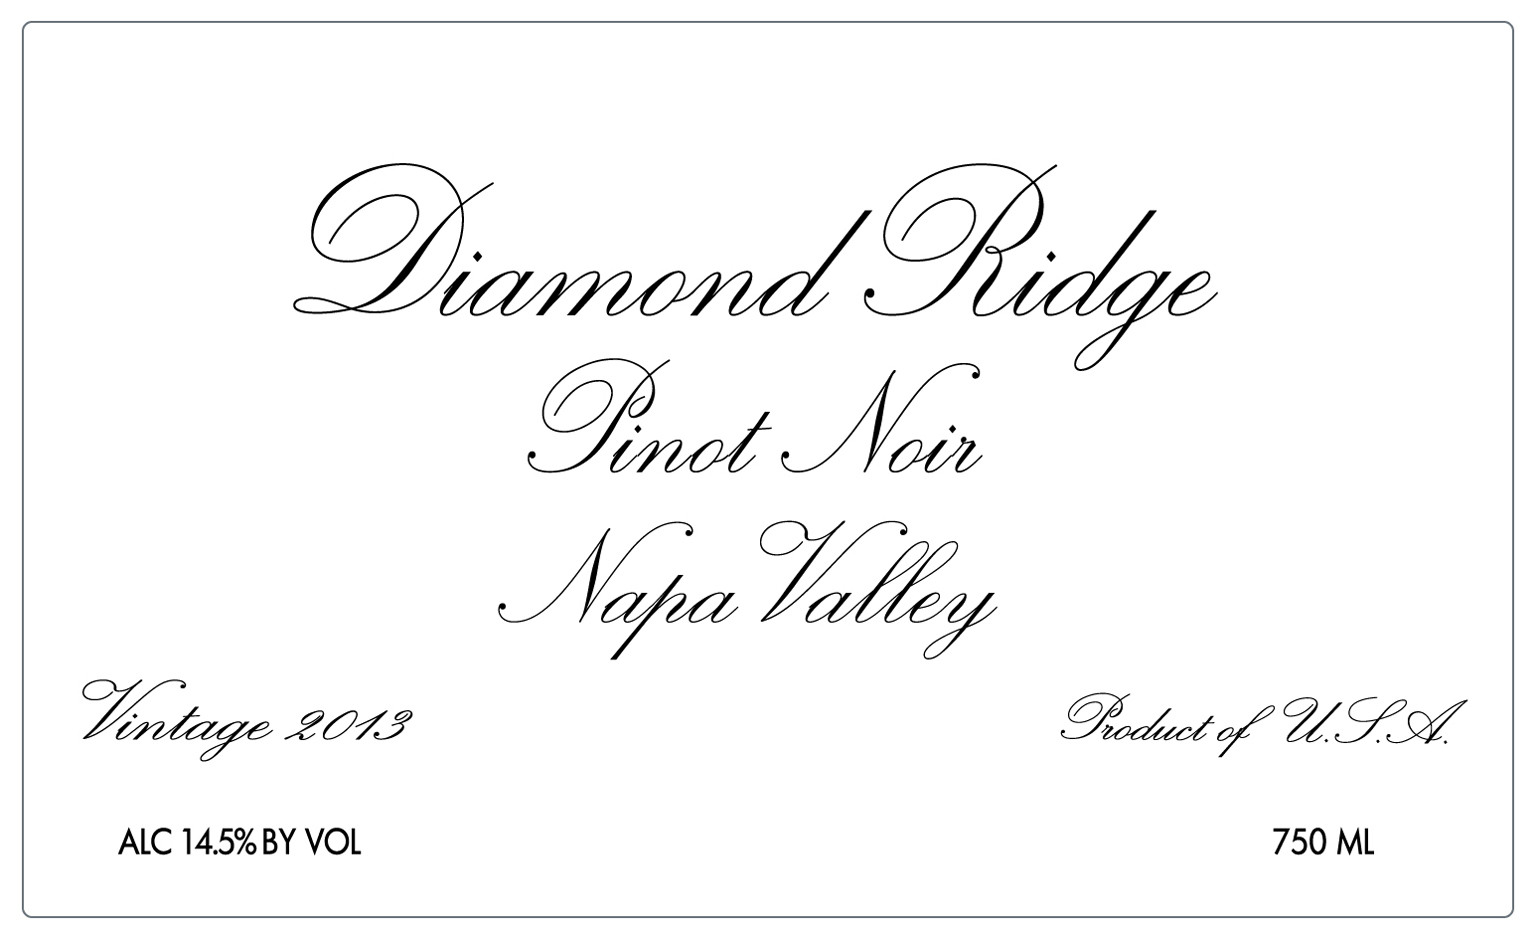 Diamond Ridge Pinot Noir Napa